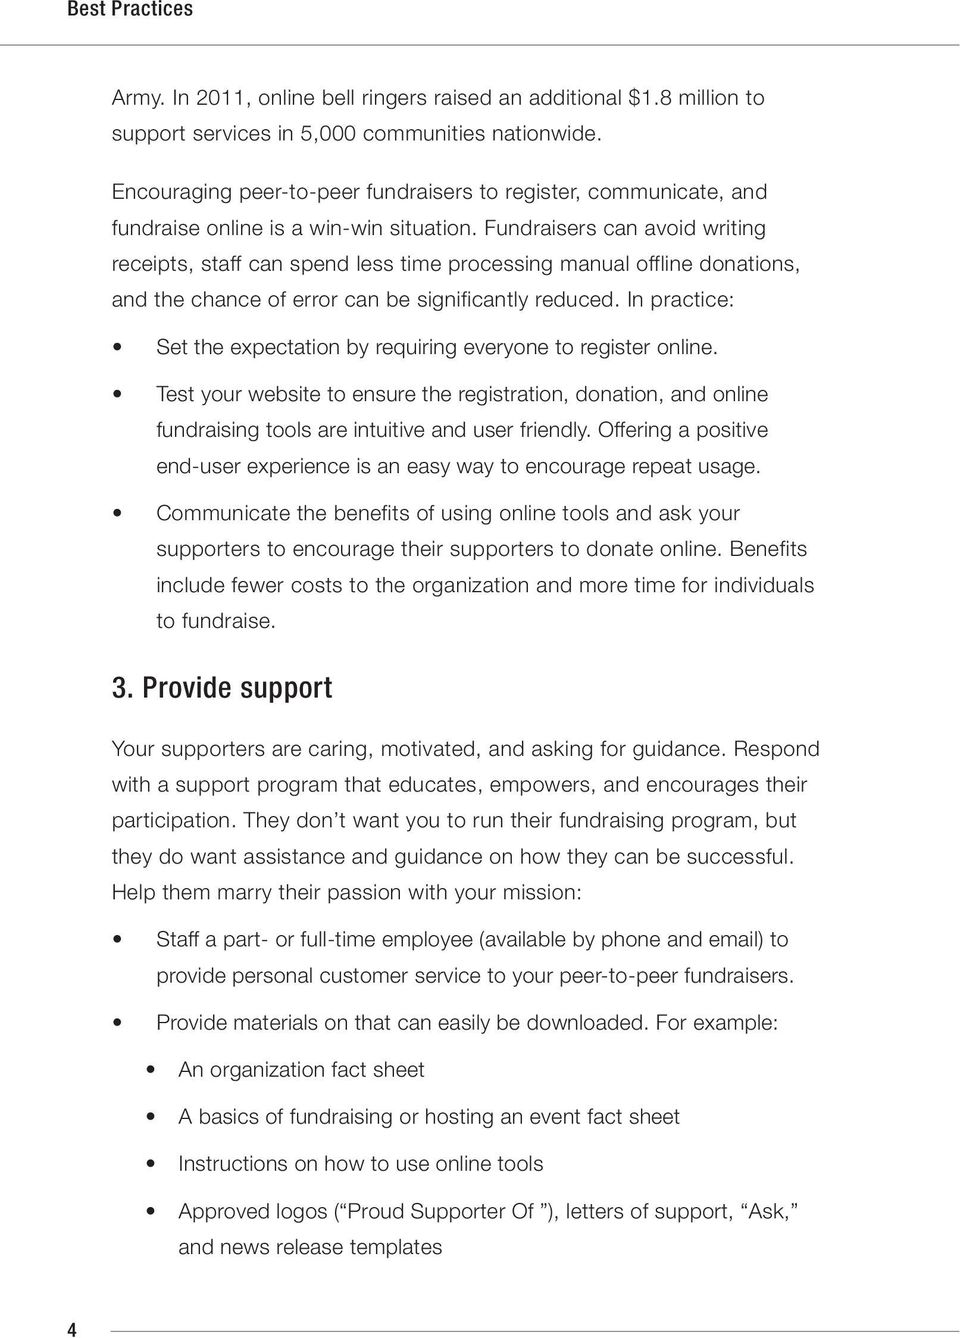 Fundraisers can avoid writing receipts, staff can spend less time processing manual offline donations, and the chance of error can be significantly reduced.